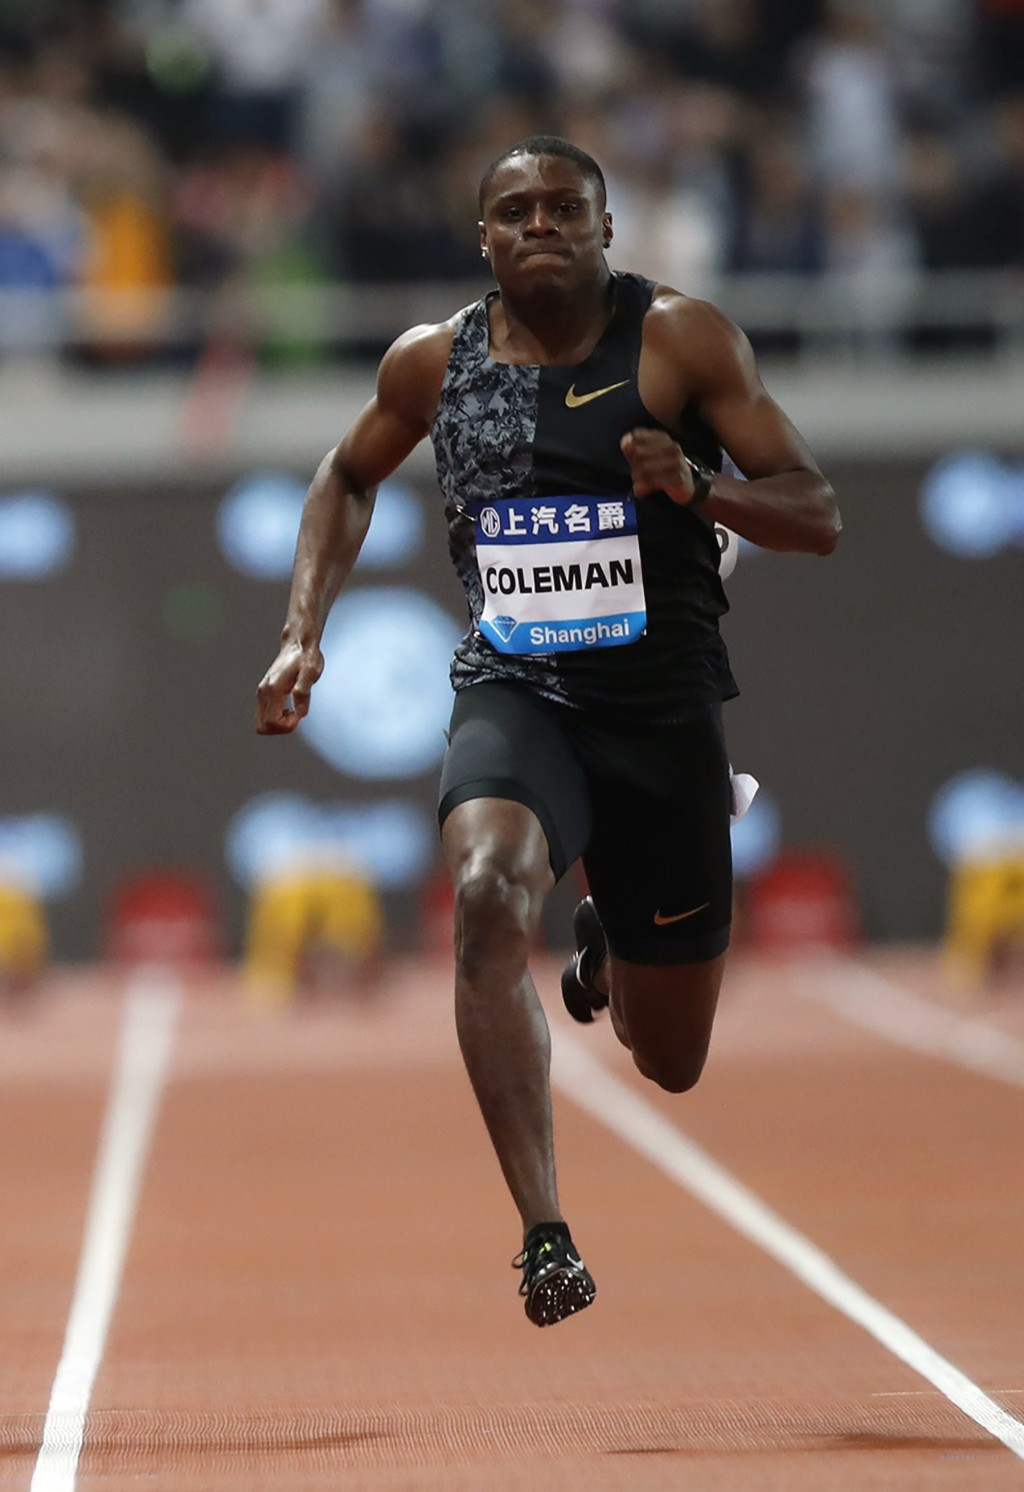 FILE - In this May 18, 2019, file photo, Christian Coleman of the United States competes in the final of the men's 100-meter event during the Diamond